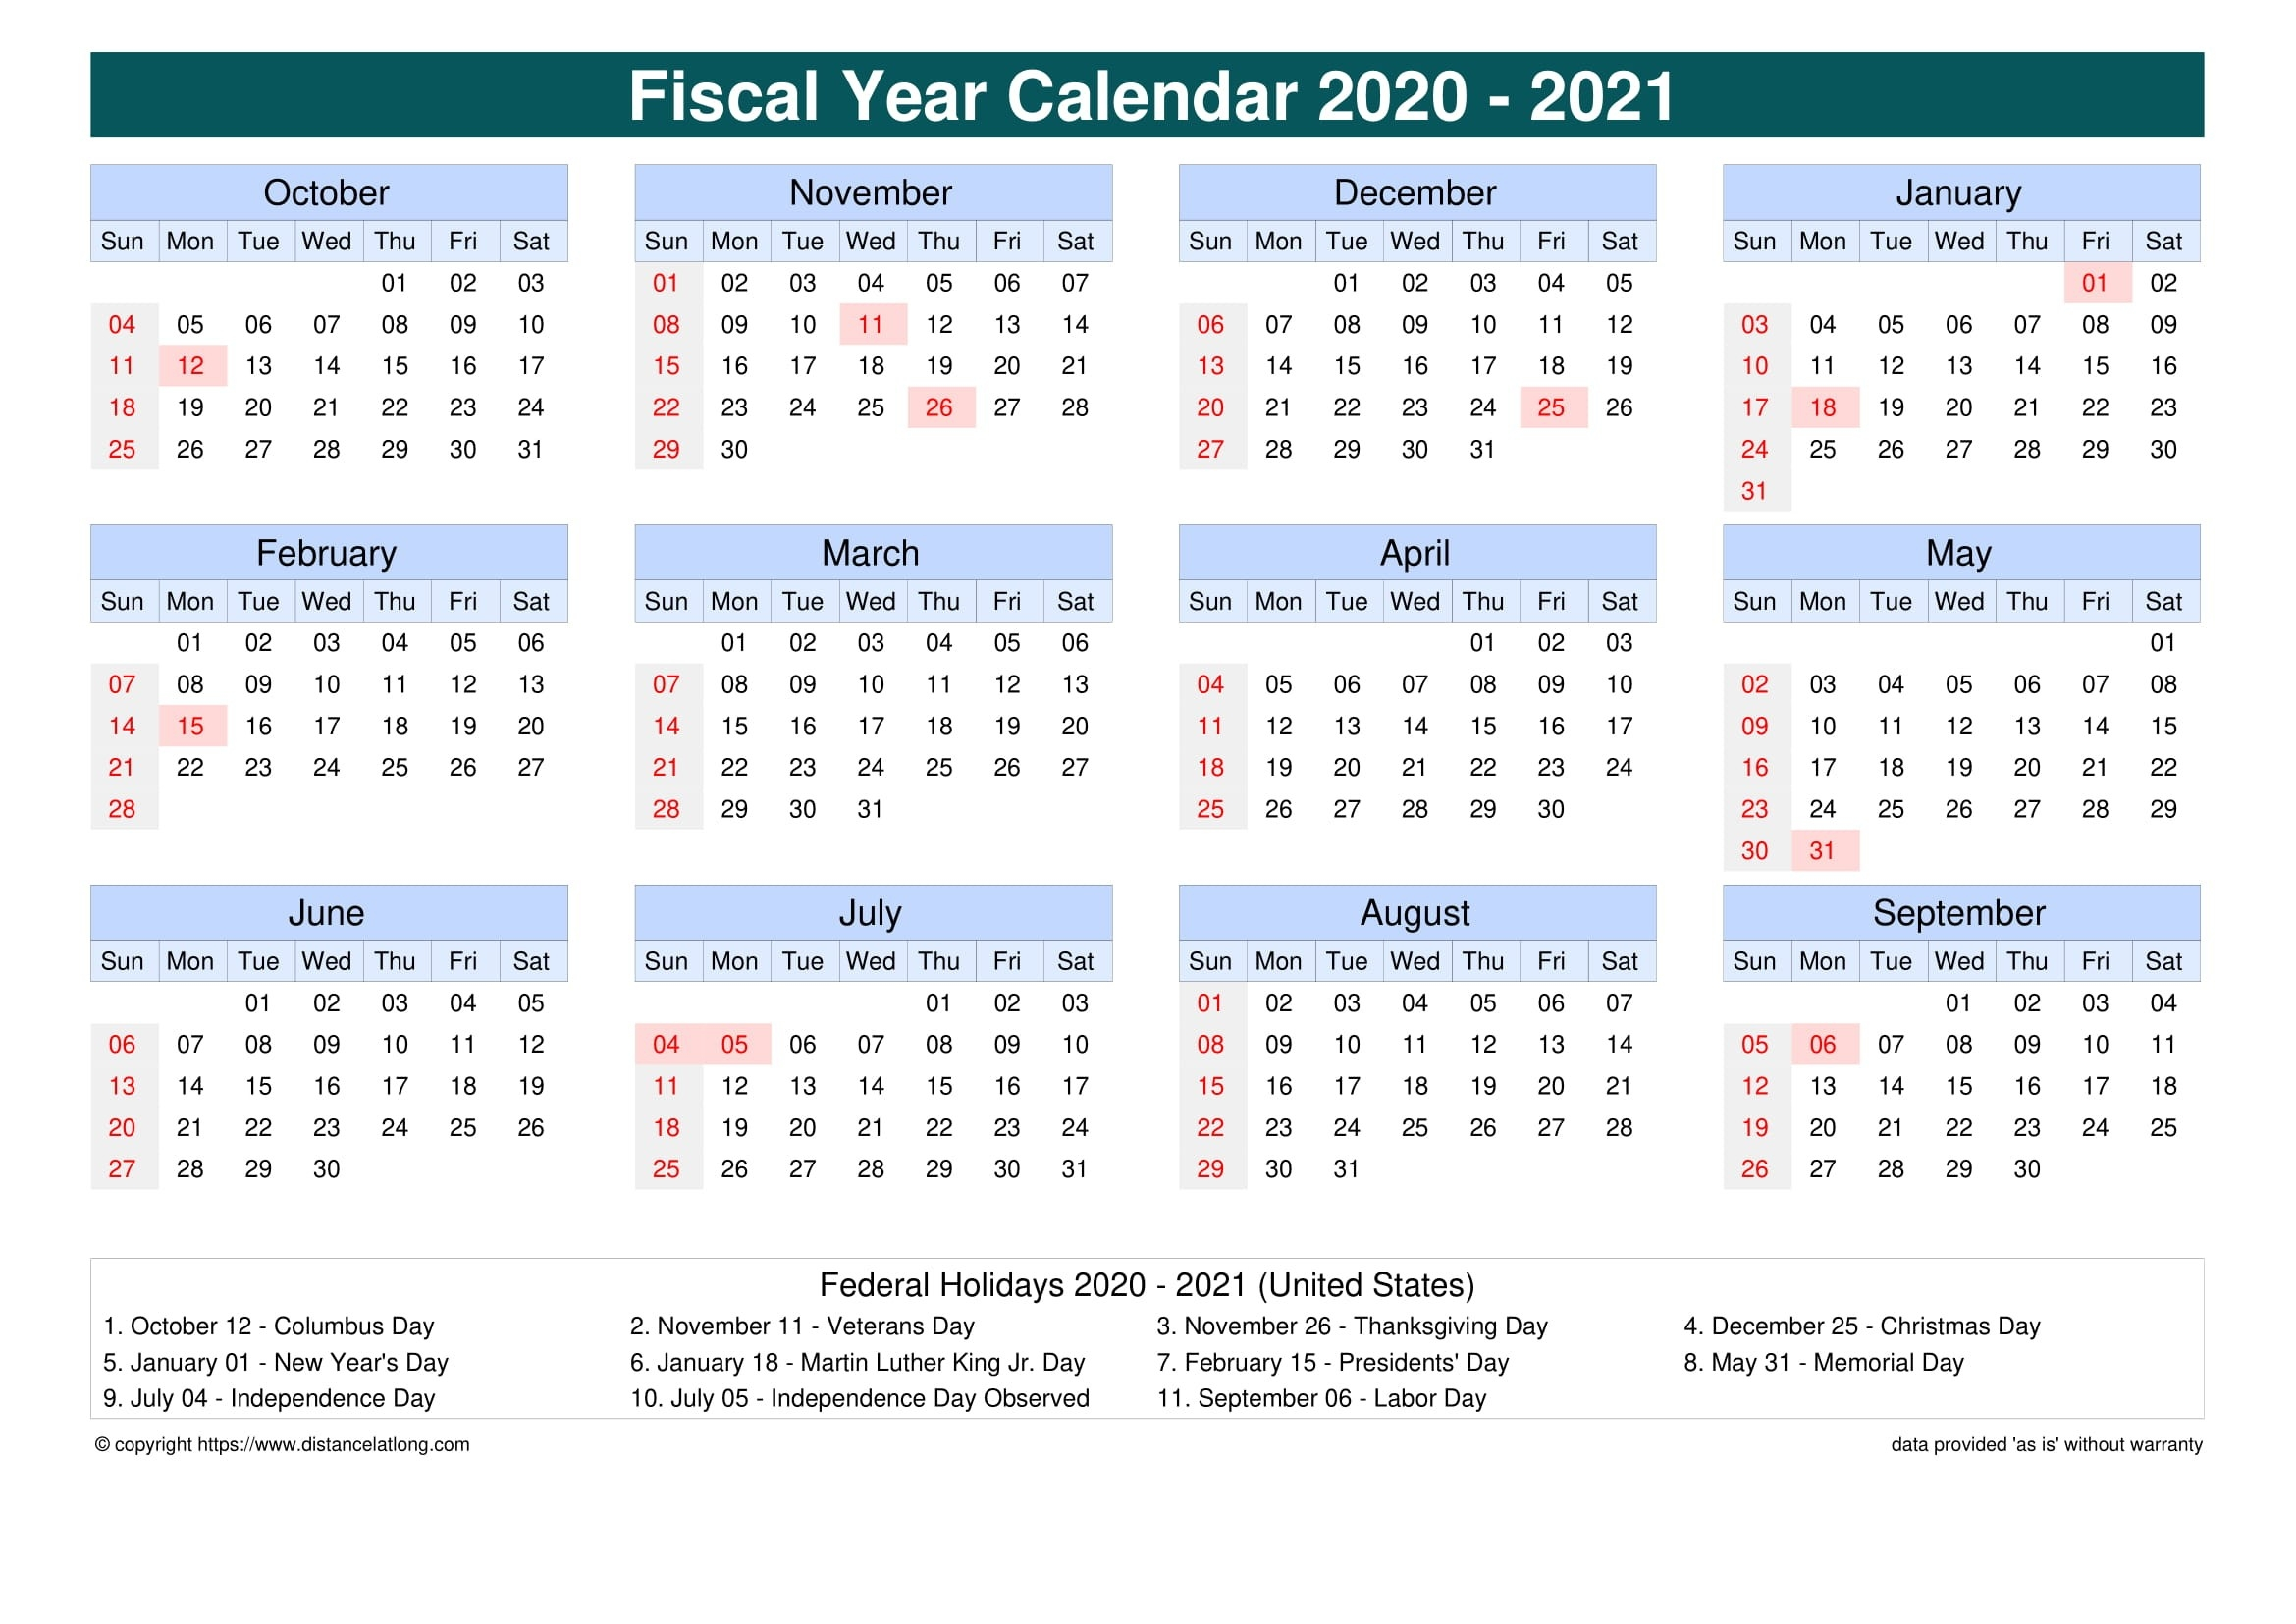 Fiscal Year 2020-2021 Calendar Templates, Free Printable  2021 19 Financial Calendar Printable